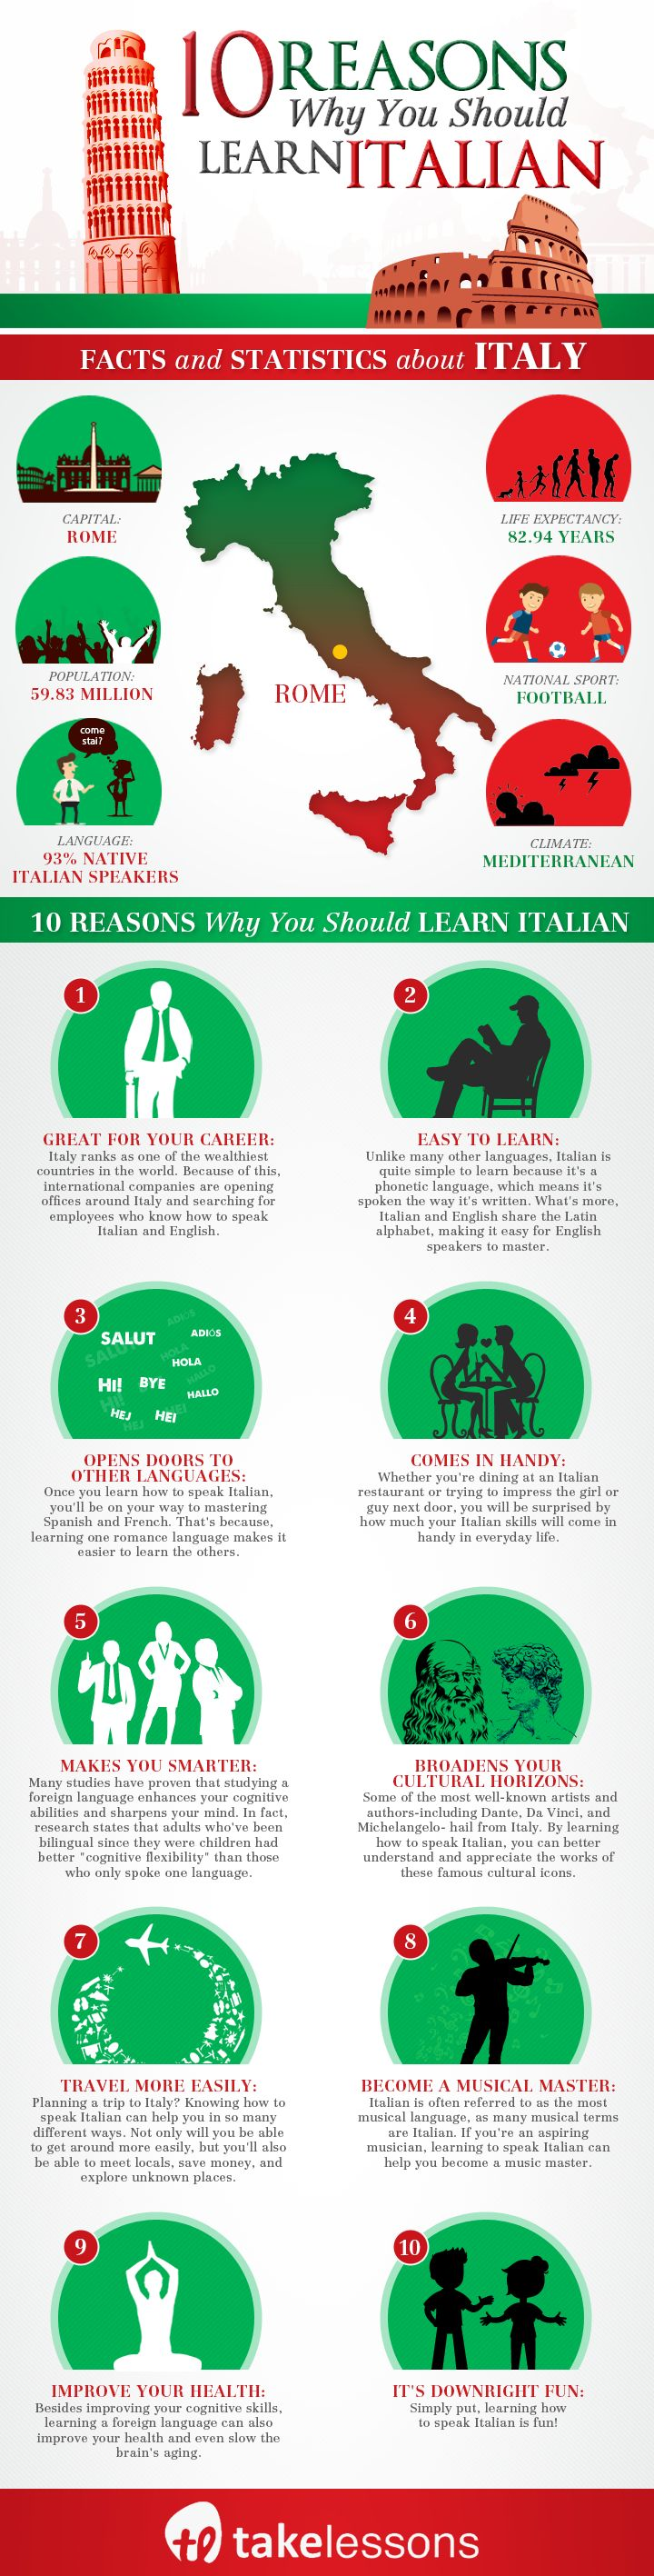 10 Reasons Why You Should Learn to Speak Italian [Infographic] http://takelessons.com/blog/speak-italian-ten-reasons-z09?utm_source=social&utm_medium=blog&utm_campaign=pinterest